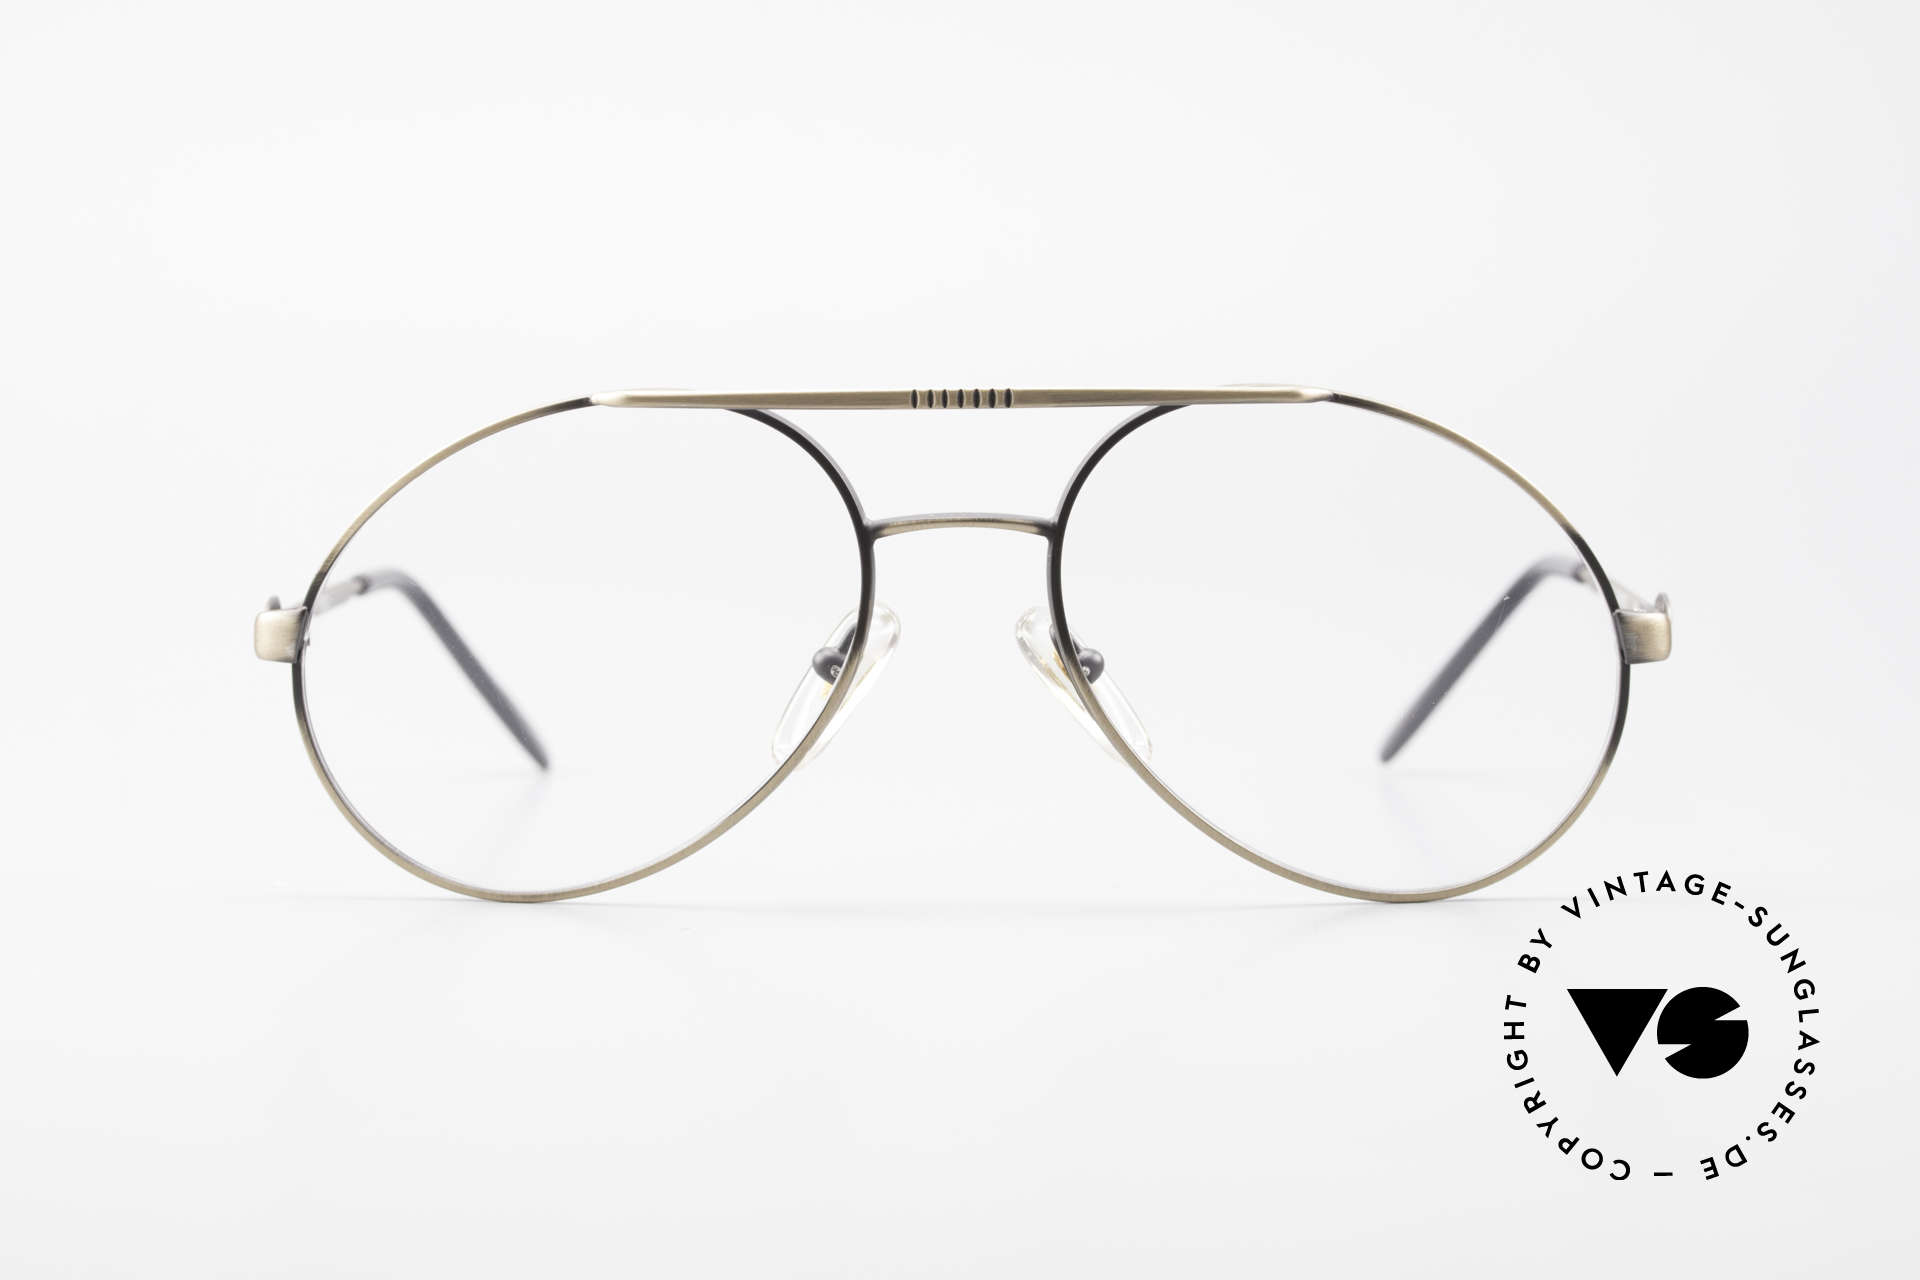 Bugatti 65282 Vintage Frame With Sun Clip, Size: large, Made for Men